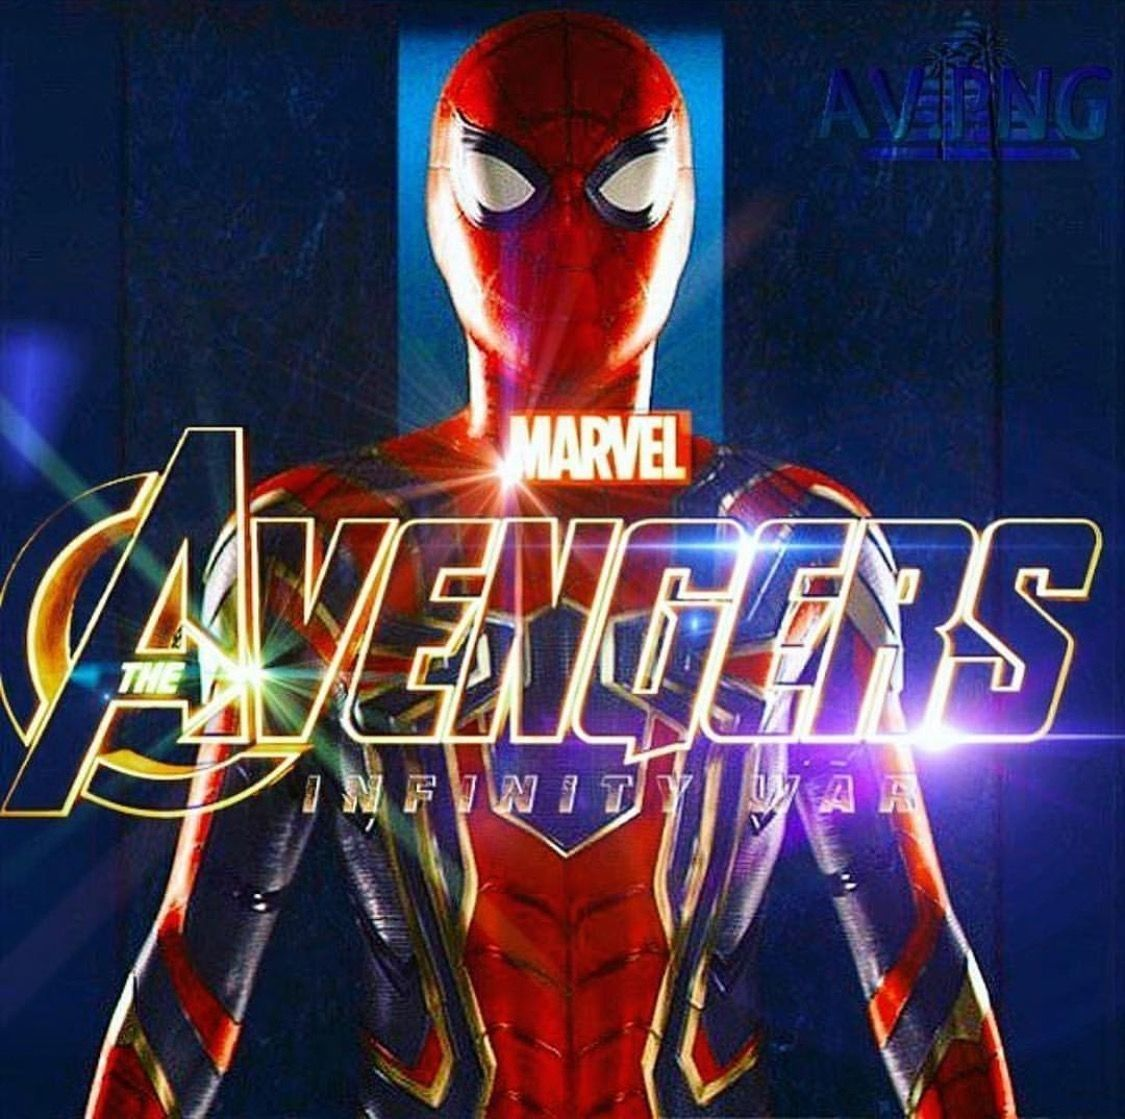 Avengers infinity war iron spider (With images) Marvel